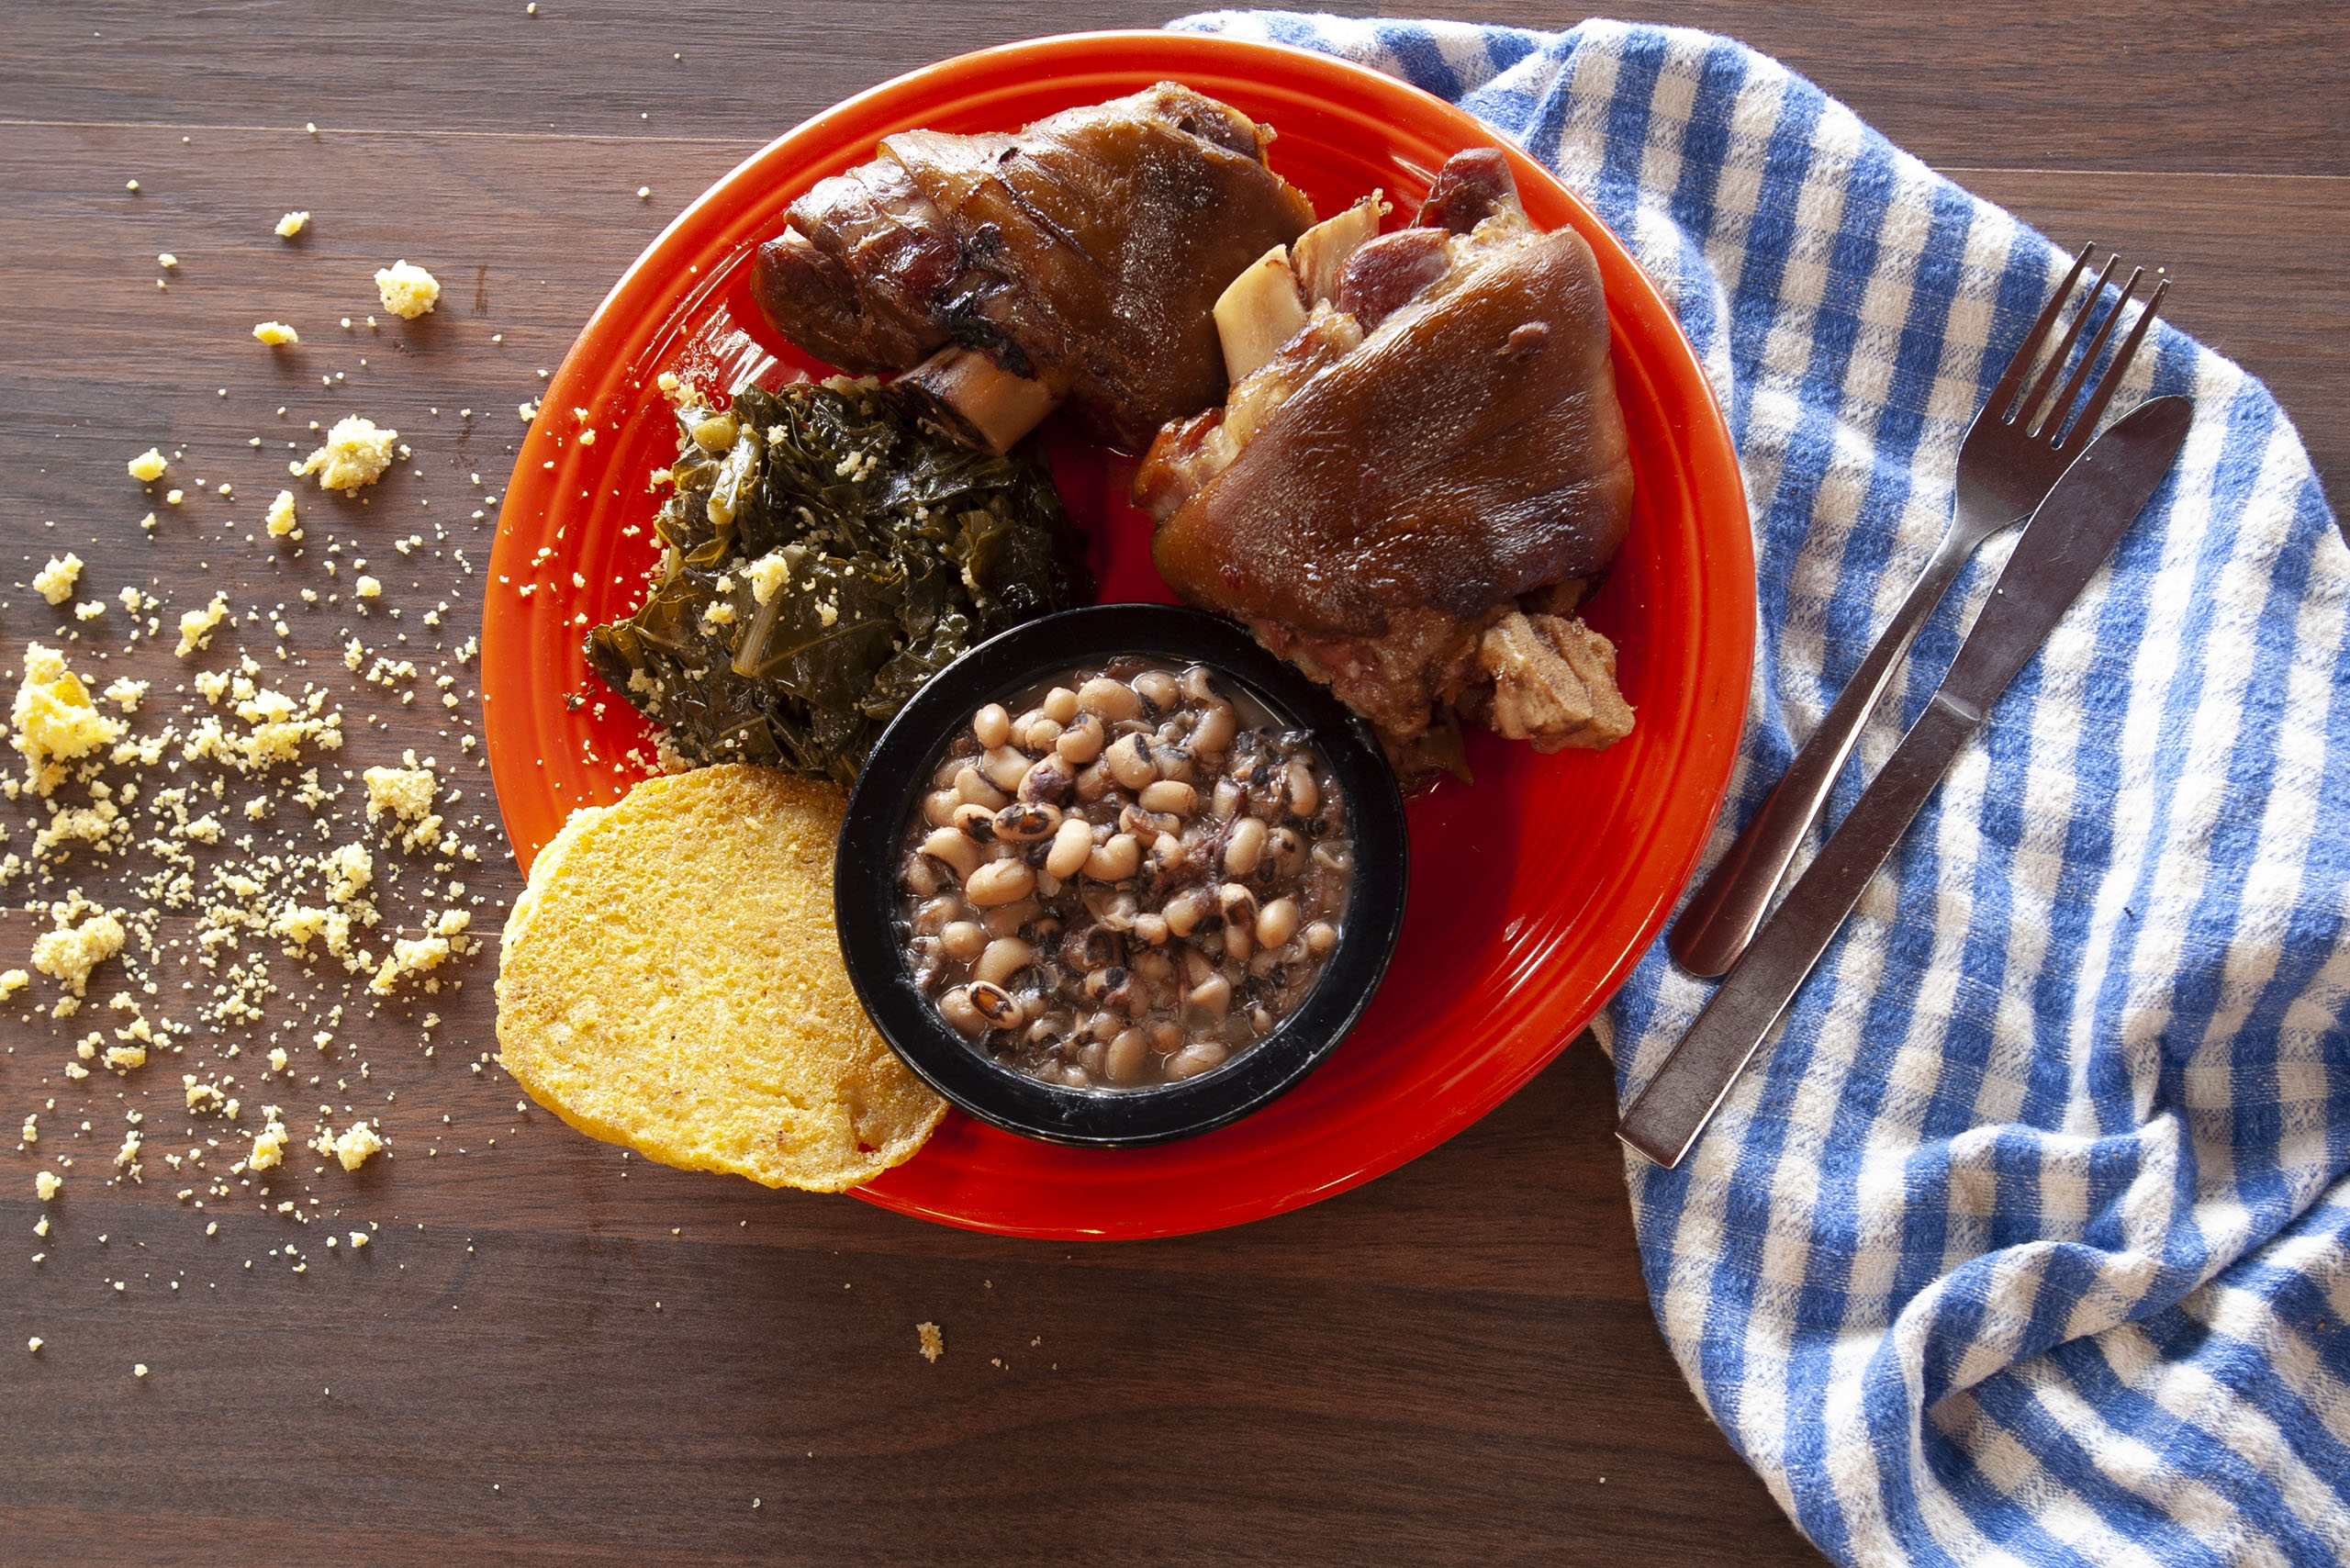 sac's kitchen, southern cooking, soul food, meat and three, meat and two, huntsville restaurant, food deals